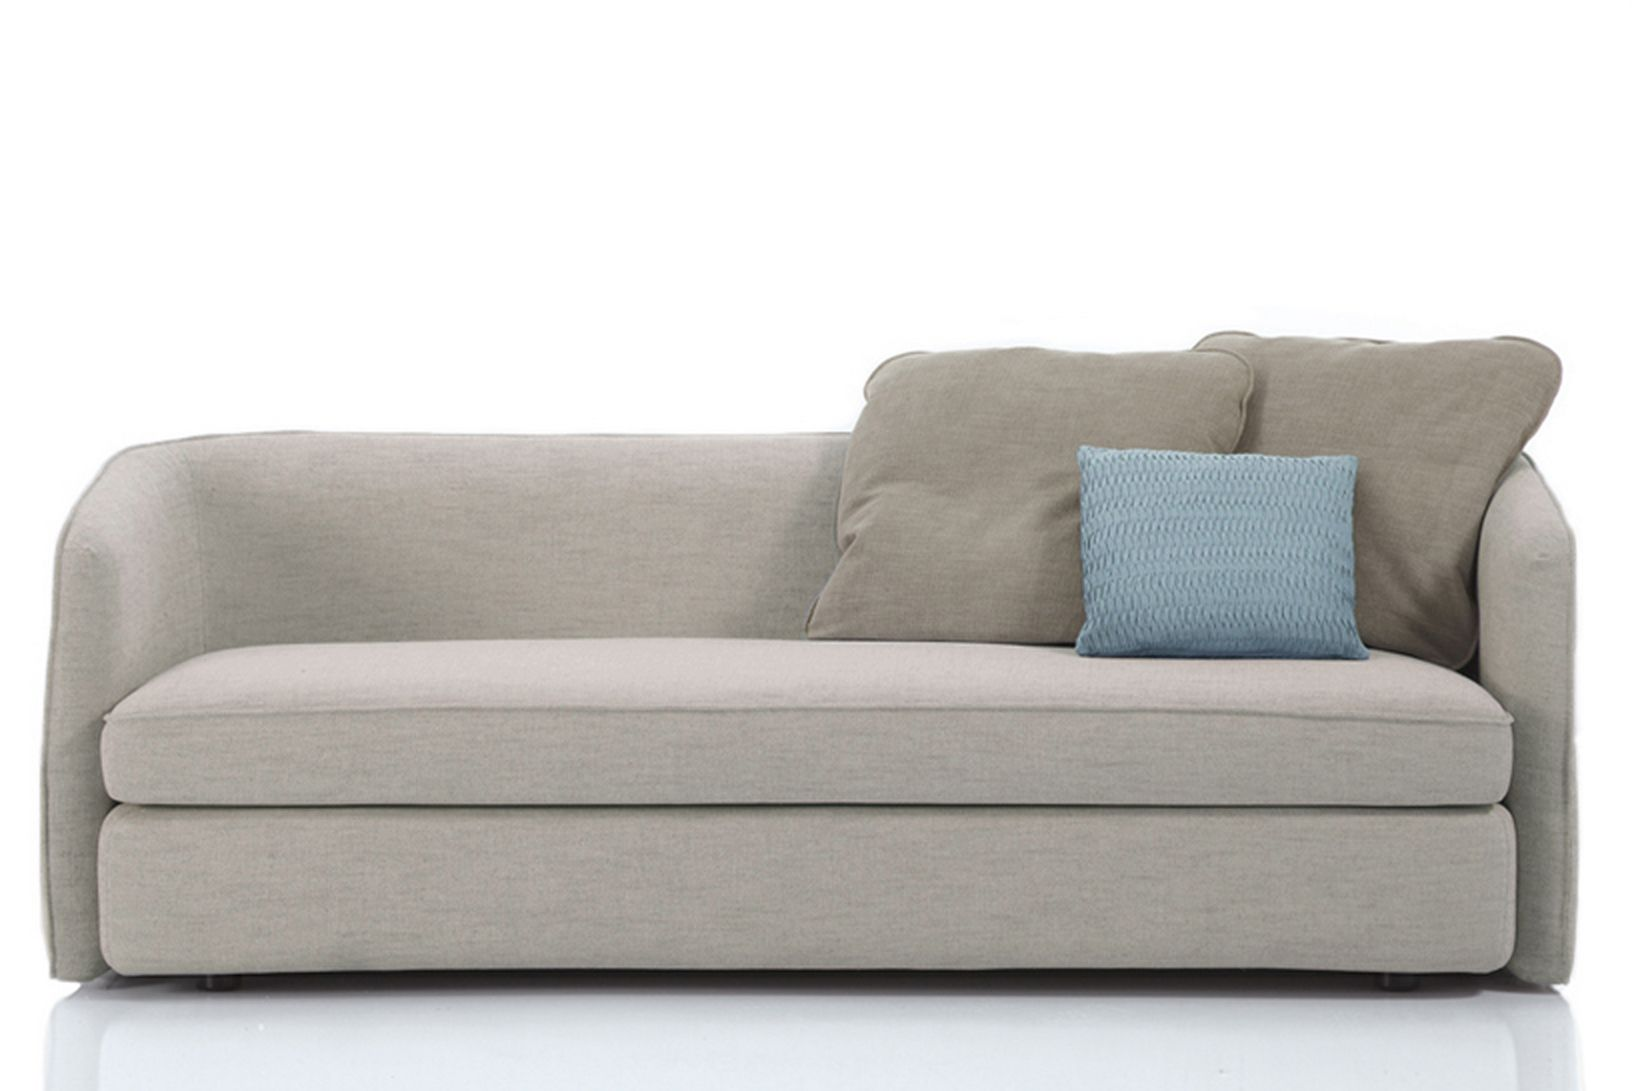 Fancy Best Small Sofas 38 For Your Shaped Sofa Ideas With Luxury